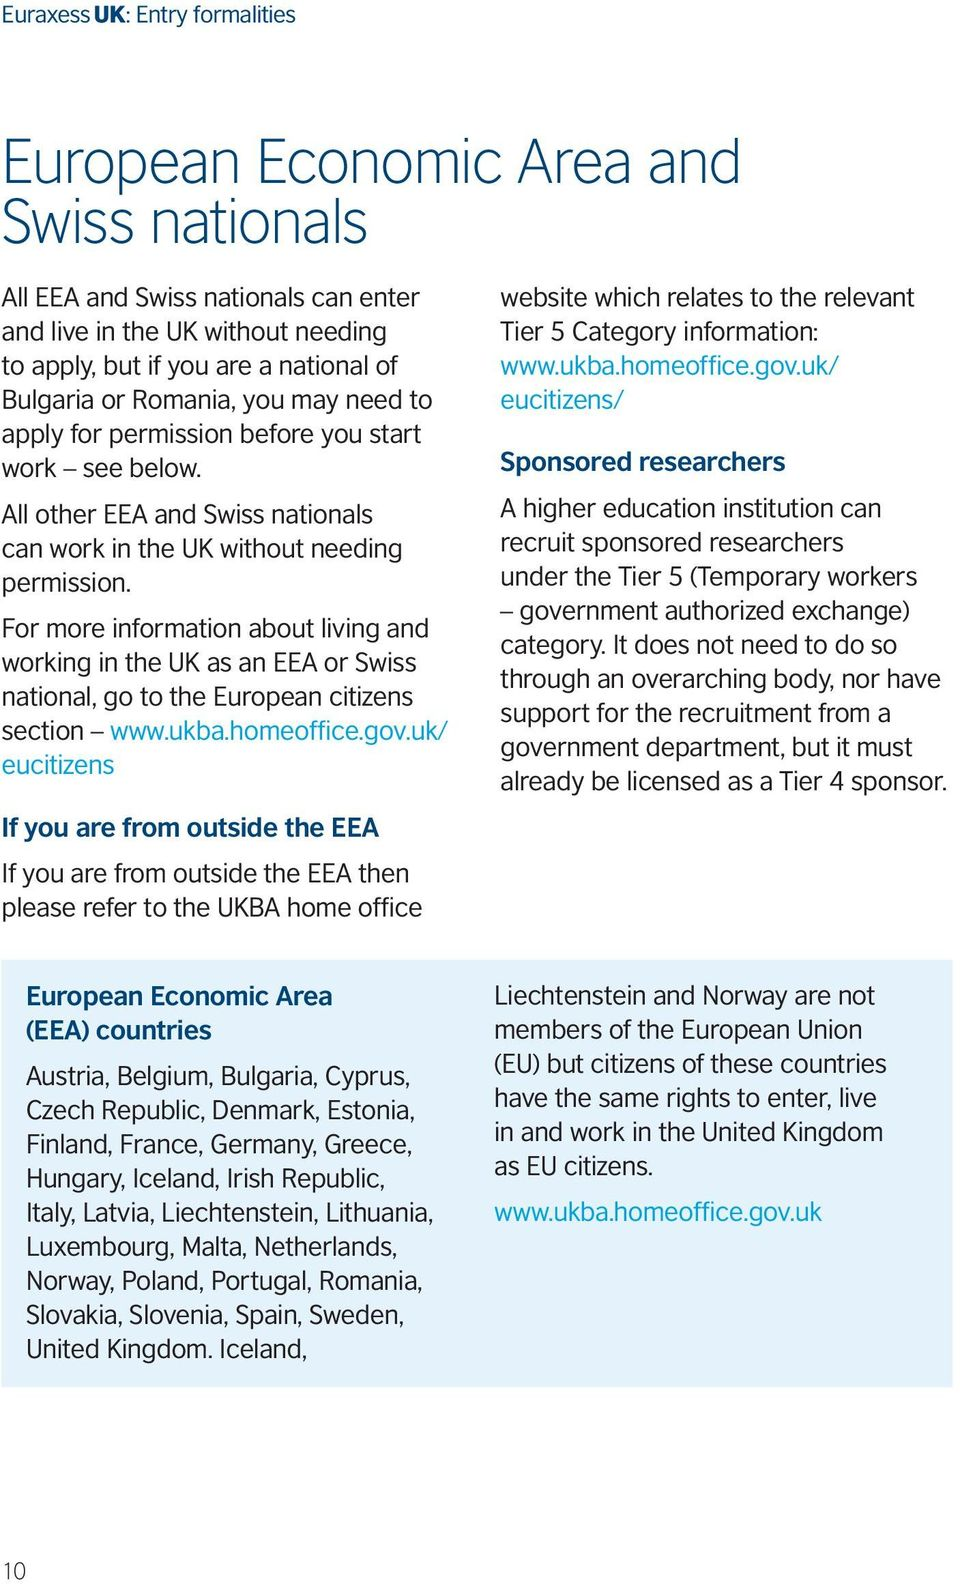 For more information about living and working in the UK as an EEA or Swiss national, go to the European citizens section www.ukba.homeoffice.gov.